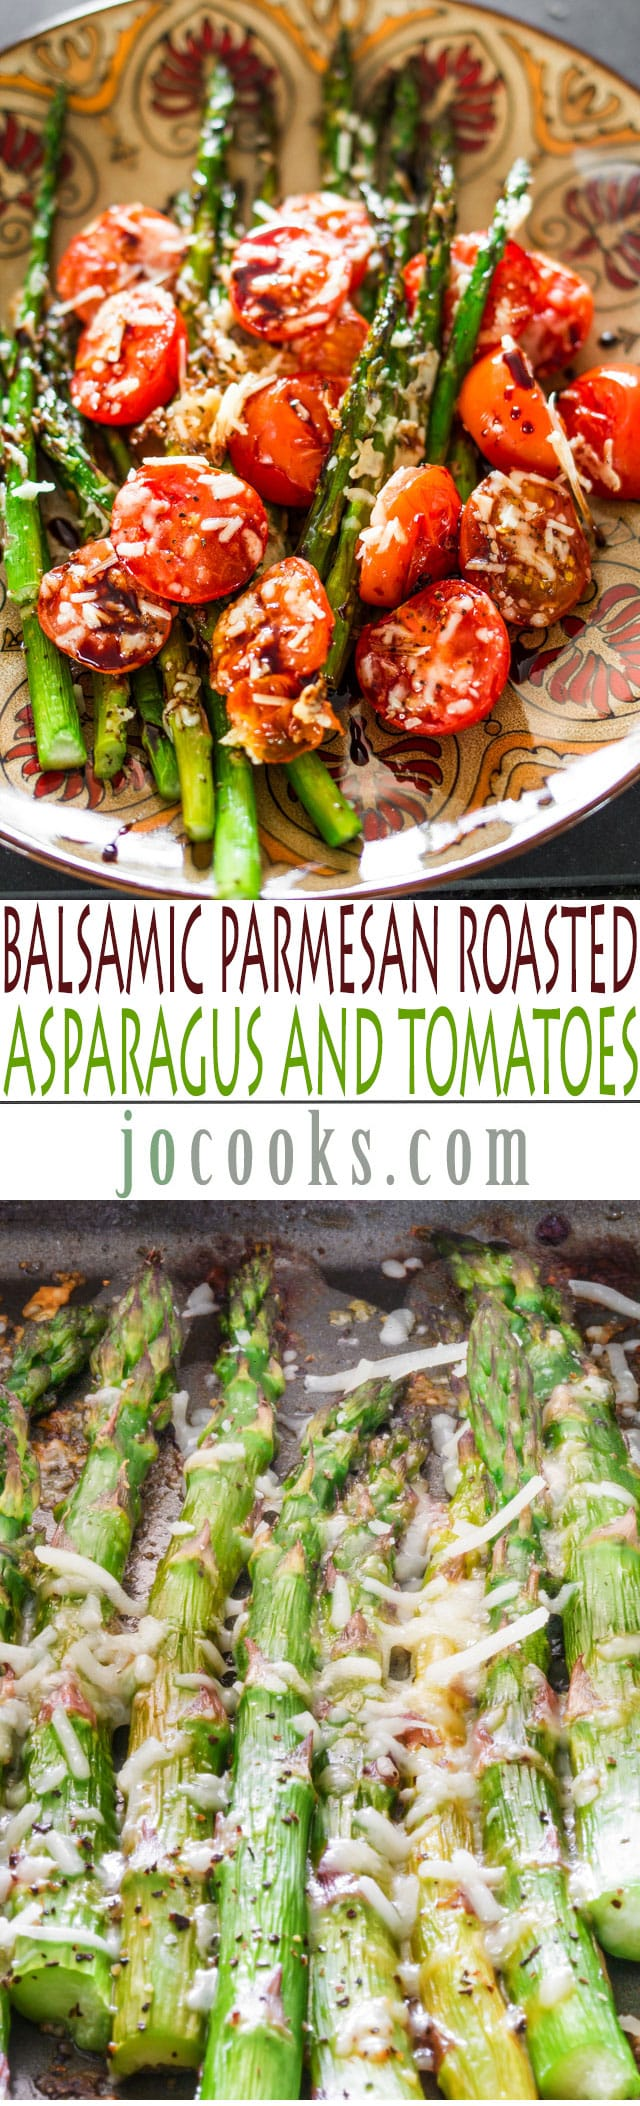 Balsamic Parmesan Roasted Asparagus and Tomatoes - roasting enhances the natural sweetness of the asparagus and tomatoes, add some grated Parmesan and a balsamic reduction for an amazing side dish.